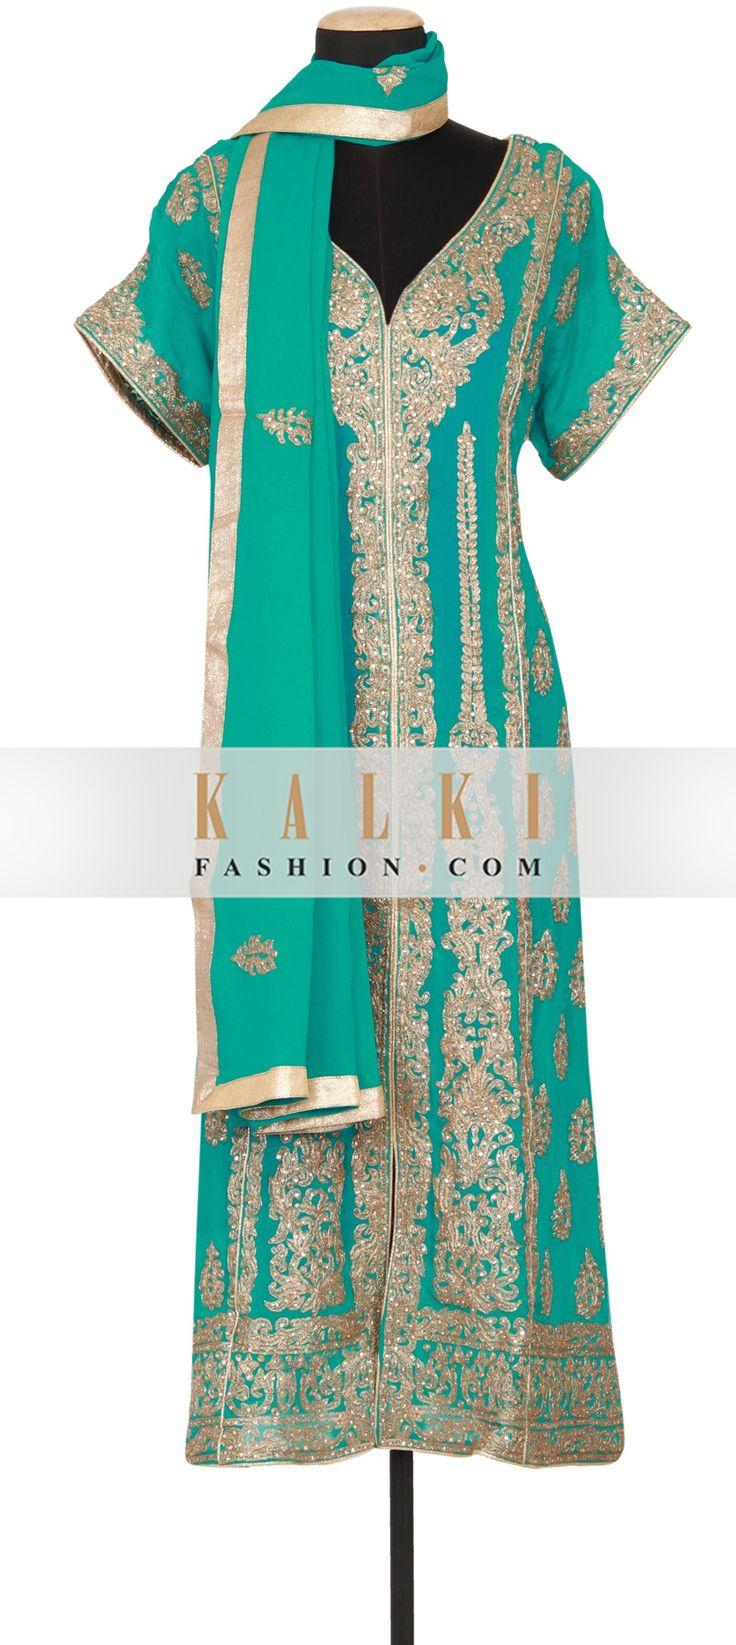 Get this beautiful Unstitched Salwar Kameez Collection http://www.kalkifashion.com/dynasty-green-georgette-semi-stitched-salwar-kameez-embellished-in-zari-and-kundan-only-on-kalki.html